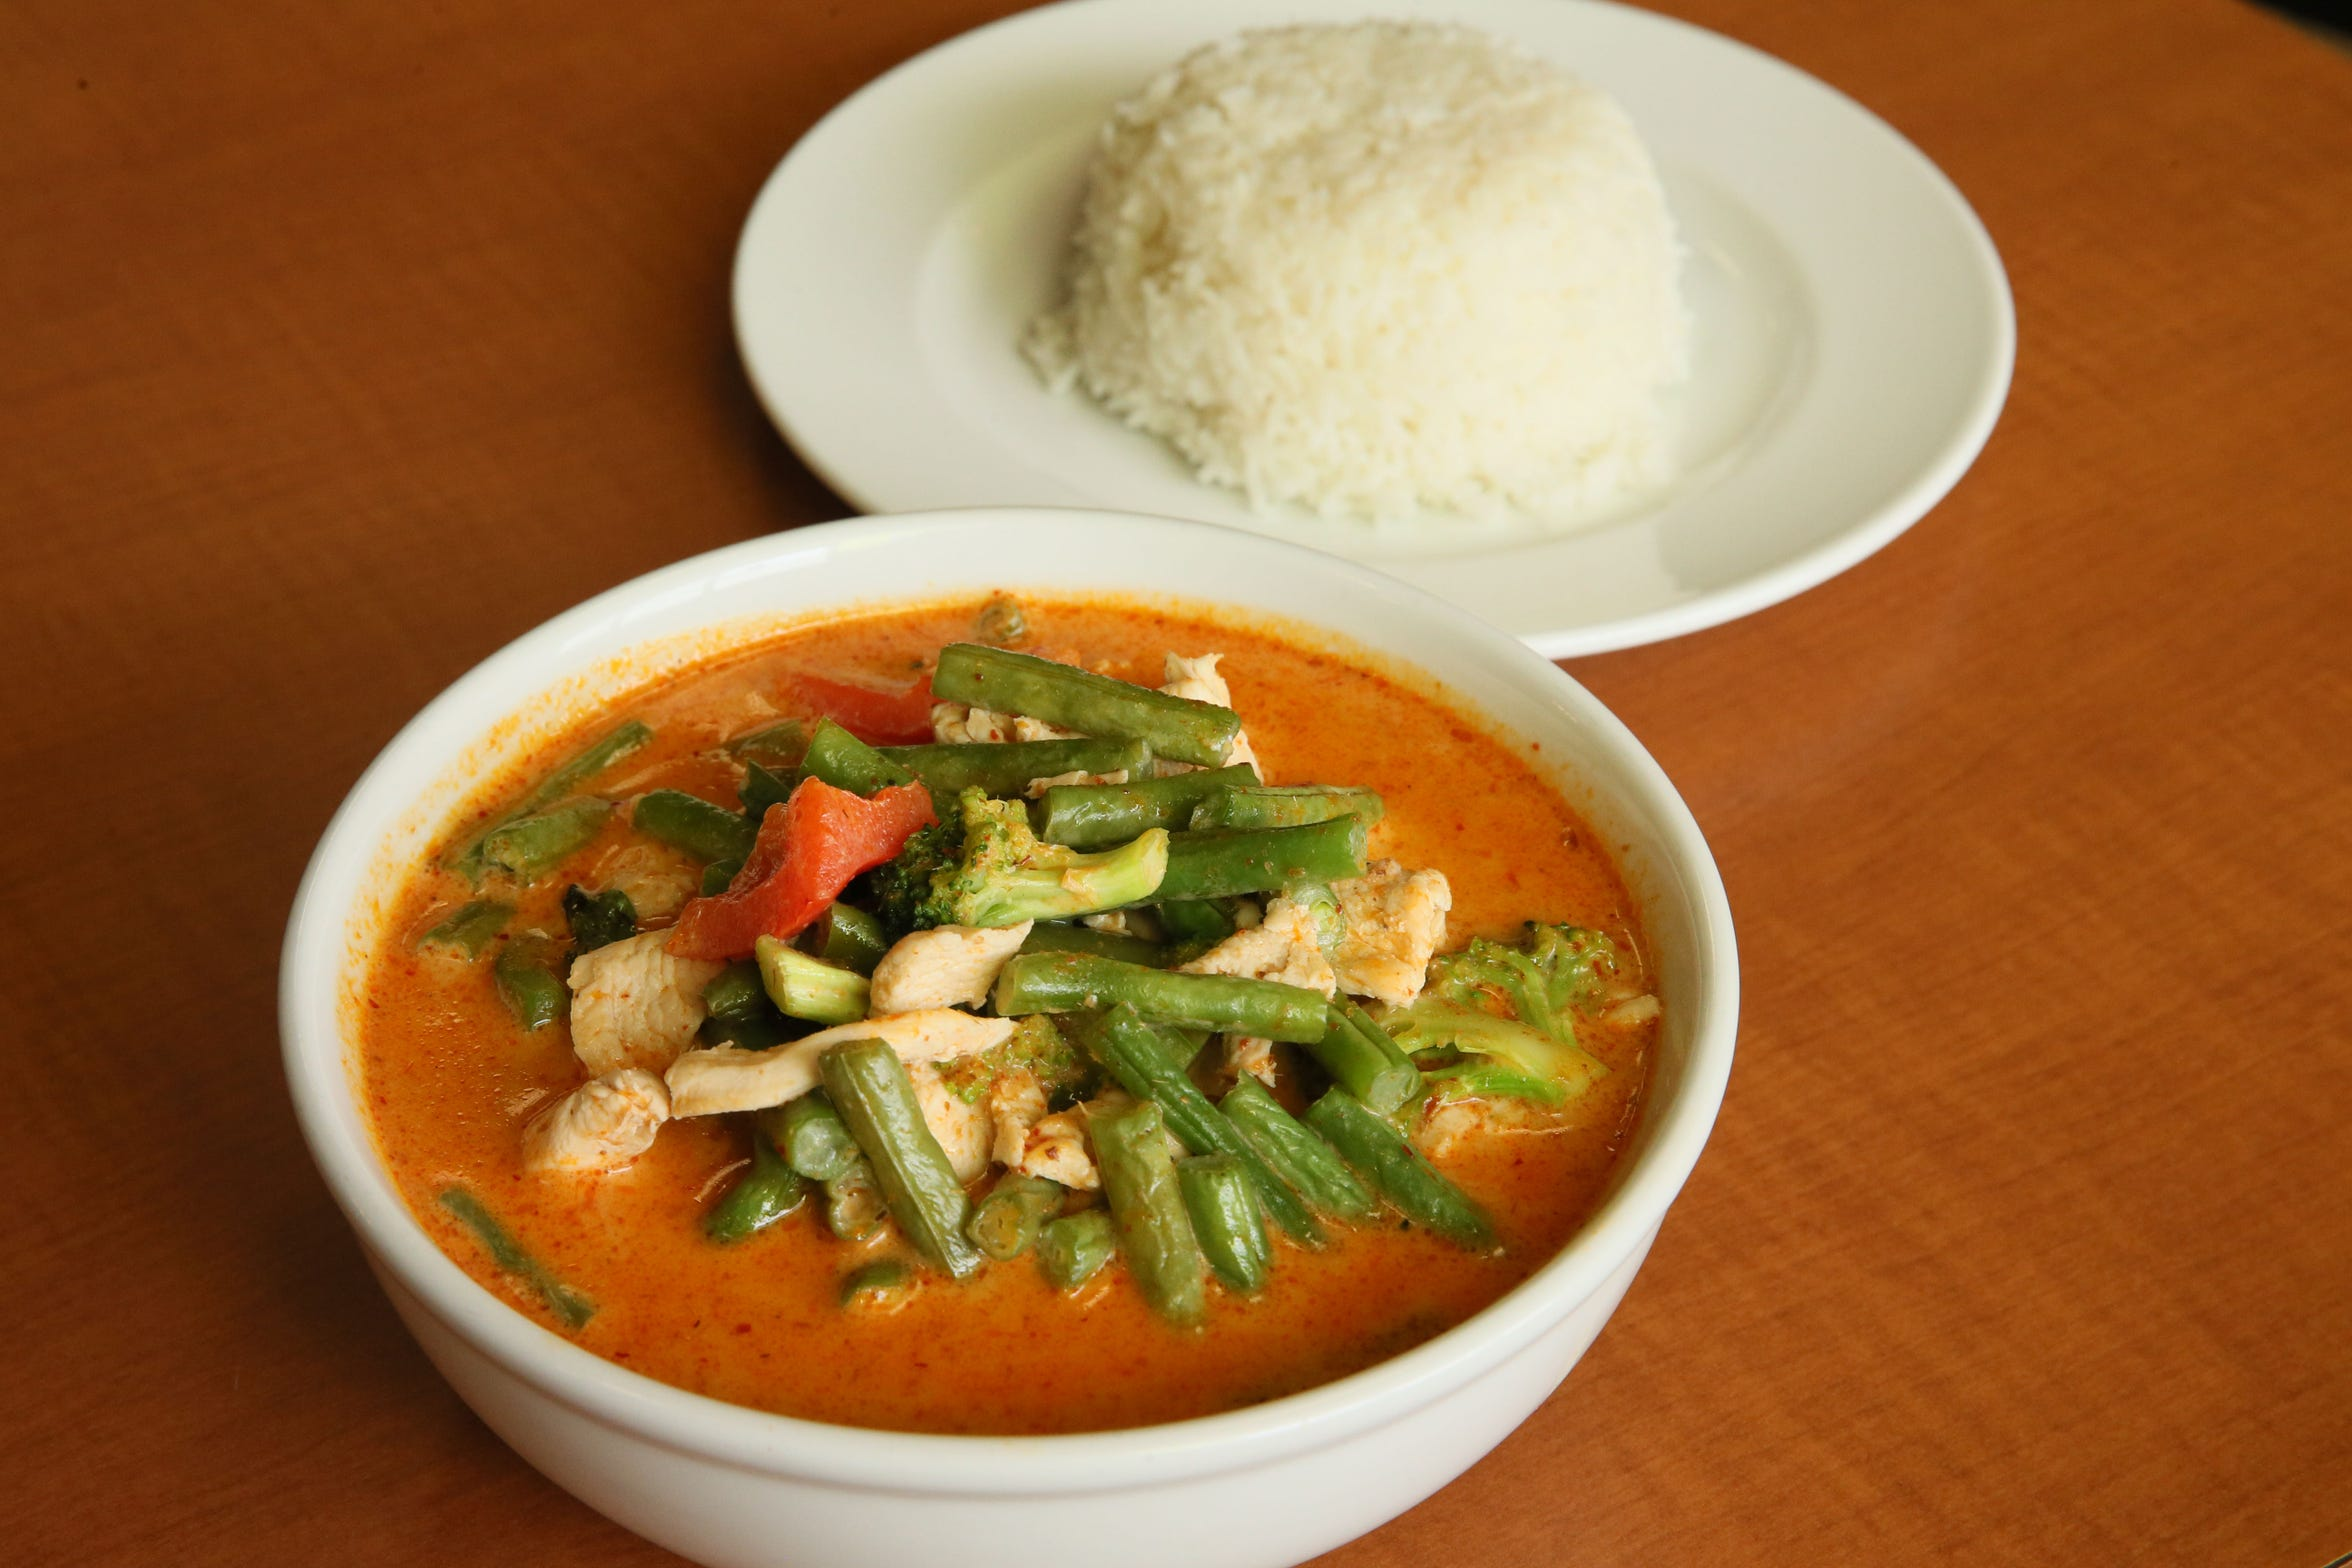 Panang curry with chicken is one of several curries at Kim's Thai Restaurant, 938 W. Layton Ave.